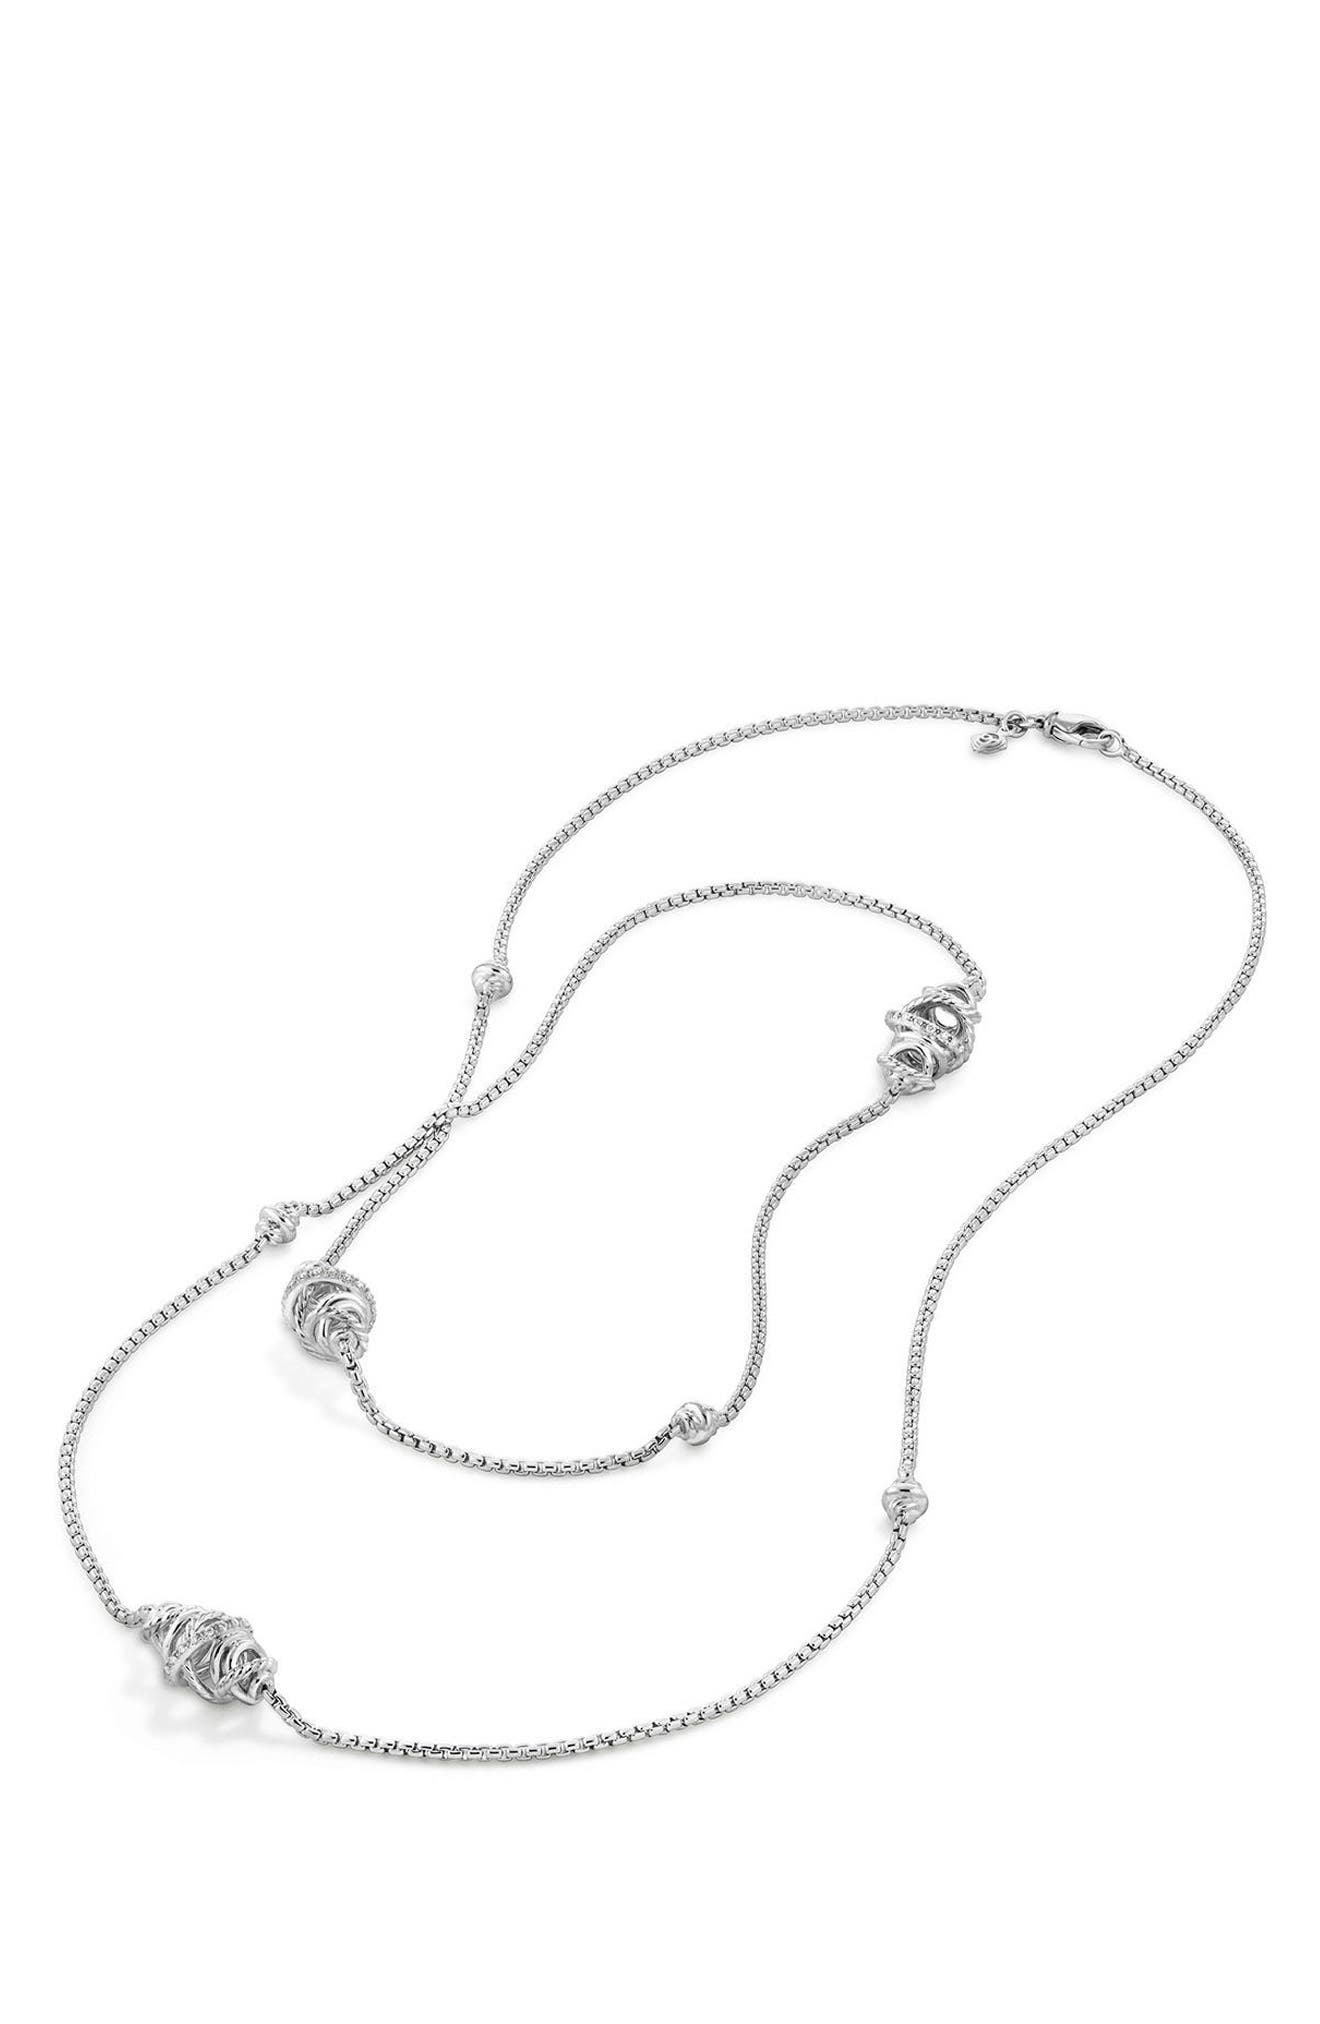 DAVID YURMAN, Crossover Station Necklace with Diamonds, Alternate thumbnail 3, color, SILVER